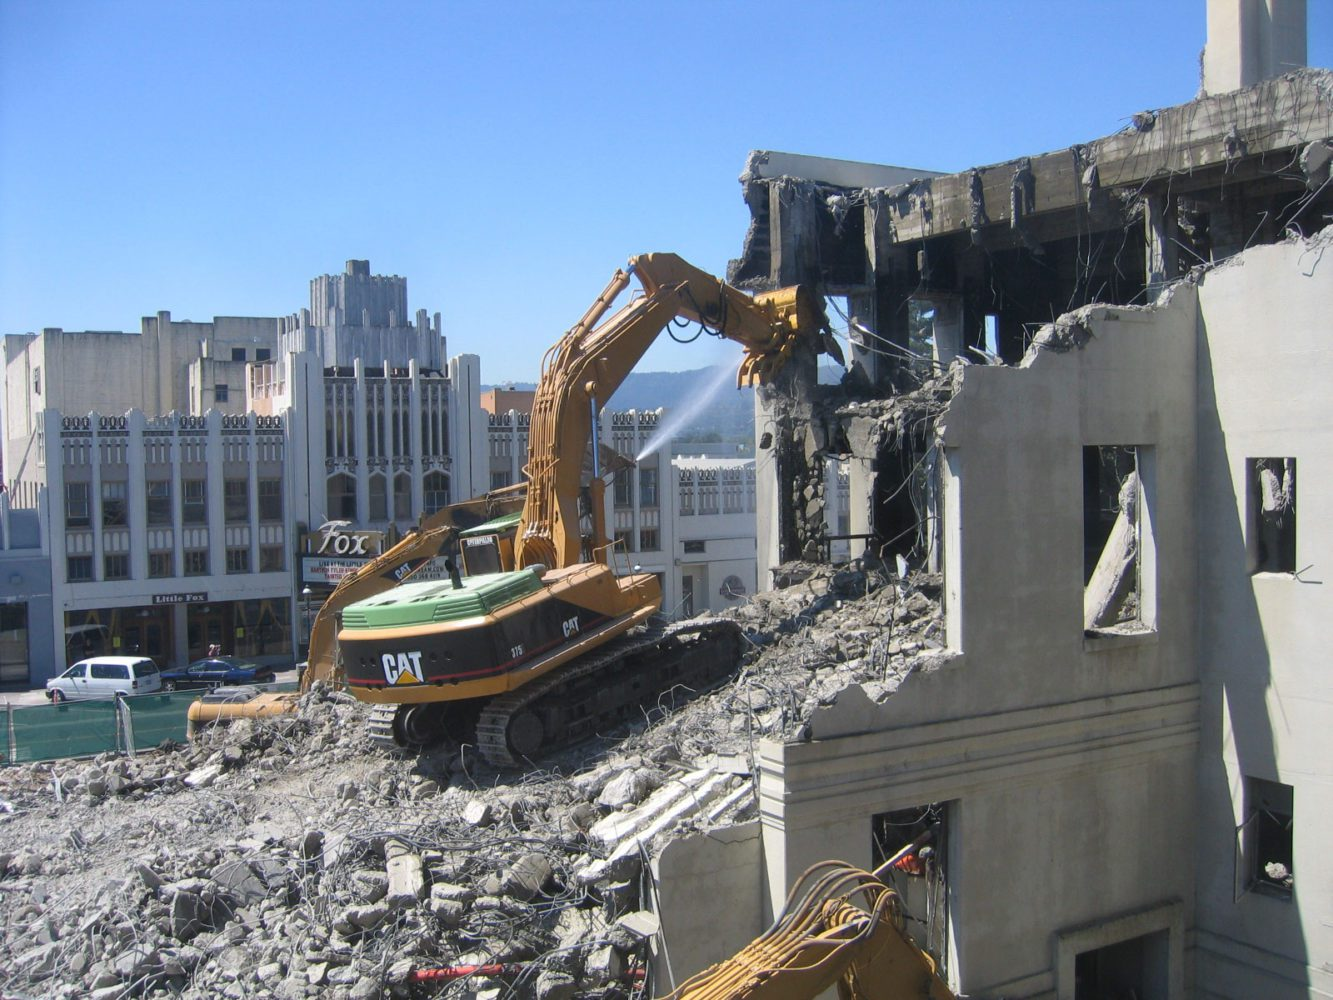 Demolition of Fiscal building in Redwood City